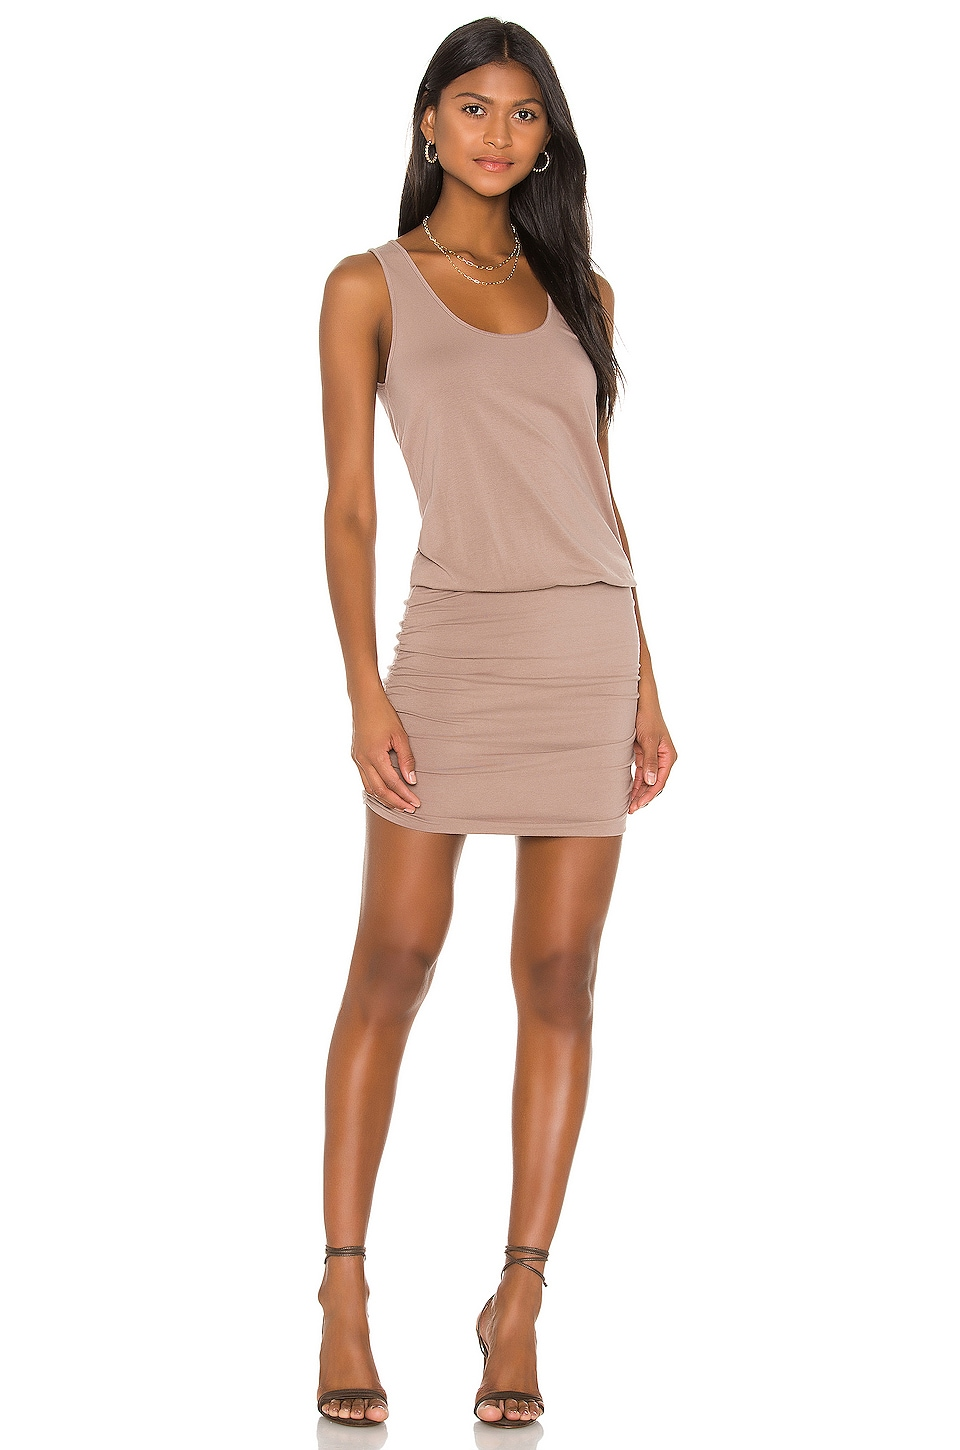 Draped Modal Jersey Mini Dress             Bobi                                                                                                       CA$ 90.97 11